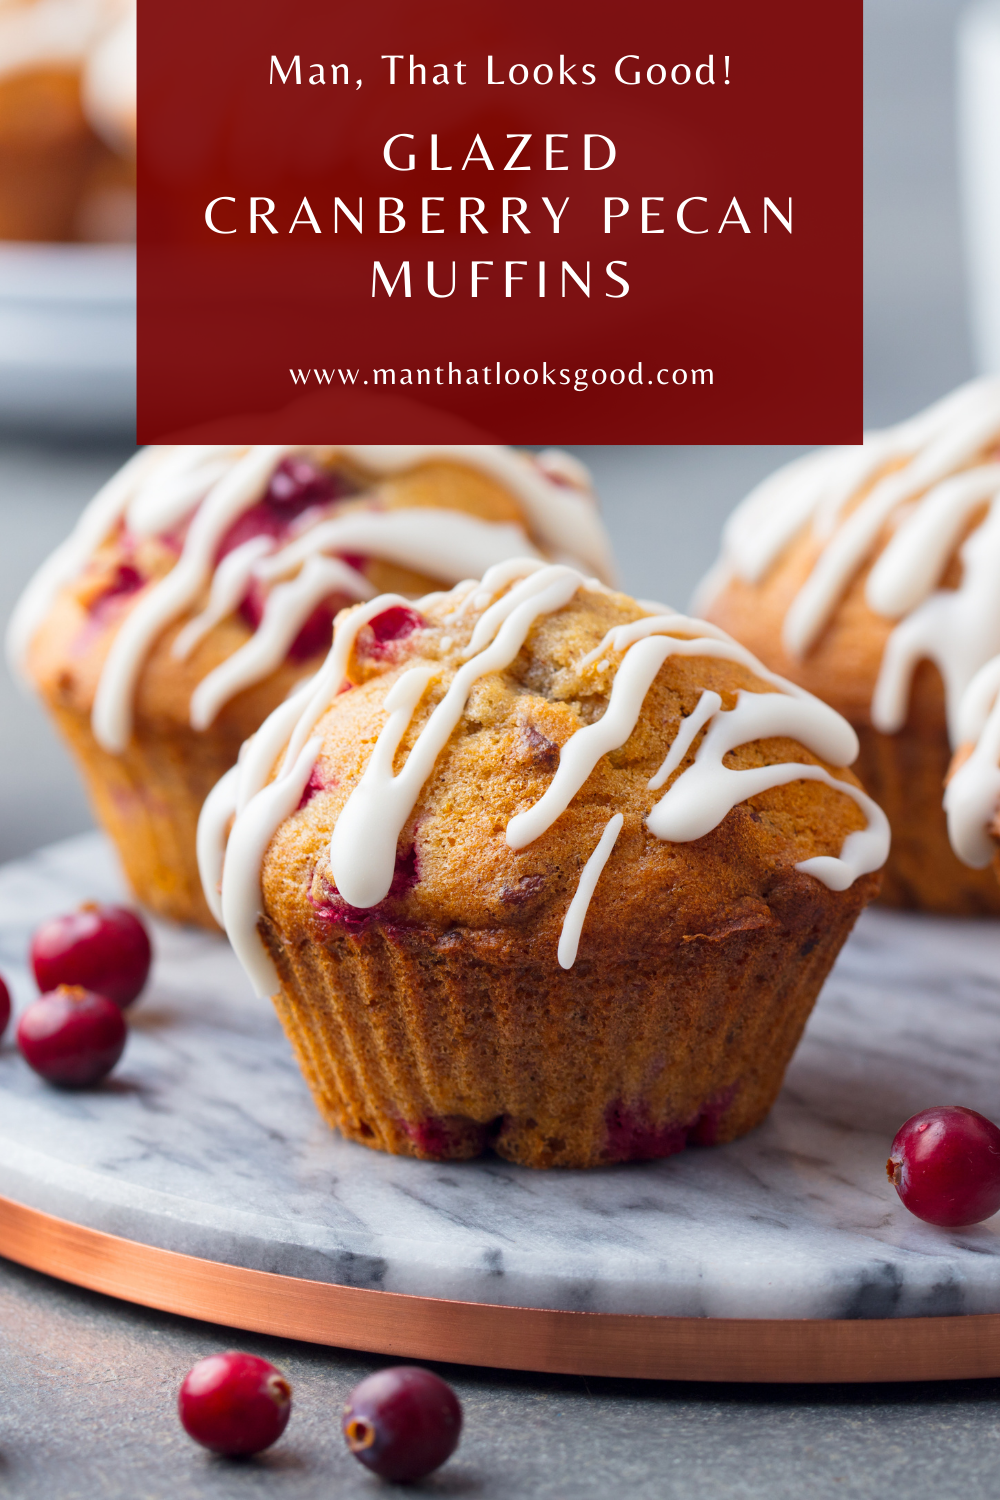 Switch up your breakfast routine with Glazed Cranberry Pecan Muffins made from scratch. They're a great alternative to cereal and good for breakfast on the go. Make ahead and freeze for a quick breakfast. #manthatlooksgood #breakfast #cranberry #cranberrymuffins #baking